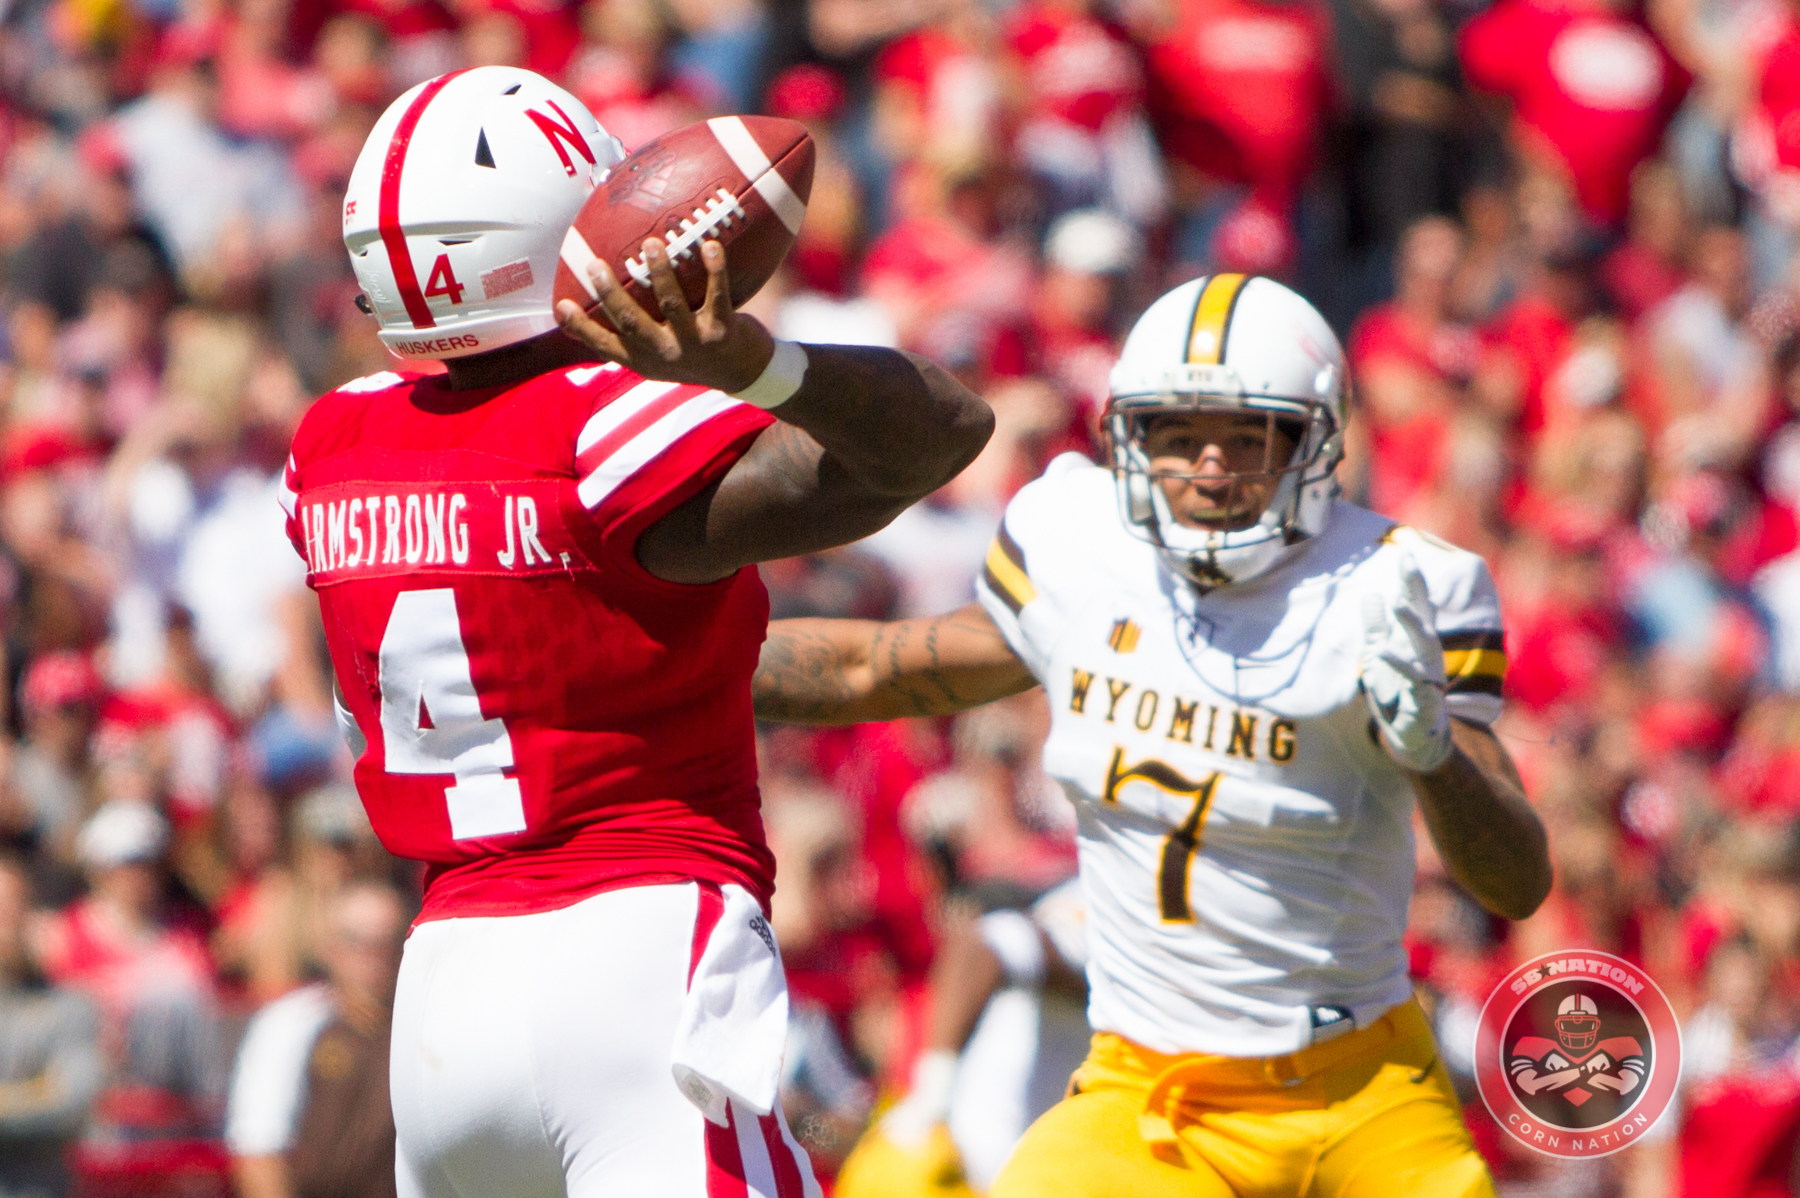 Gallery: Armstrong Sets Record, Huskers Move to 2-0